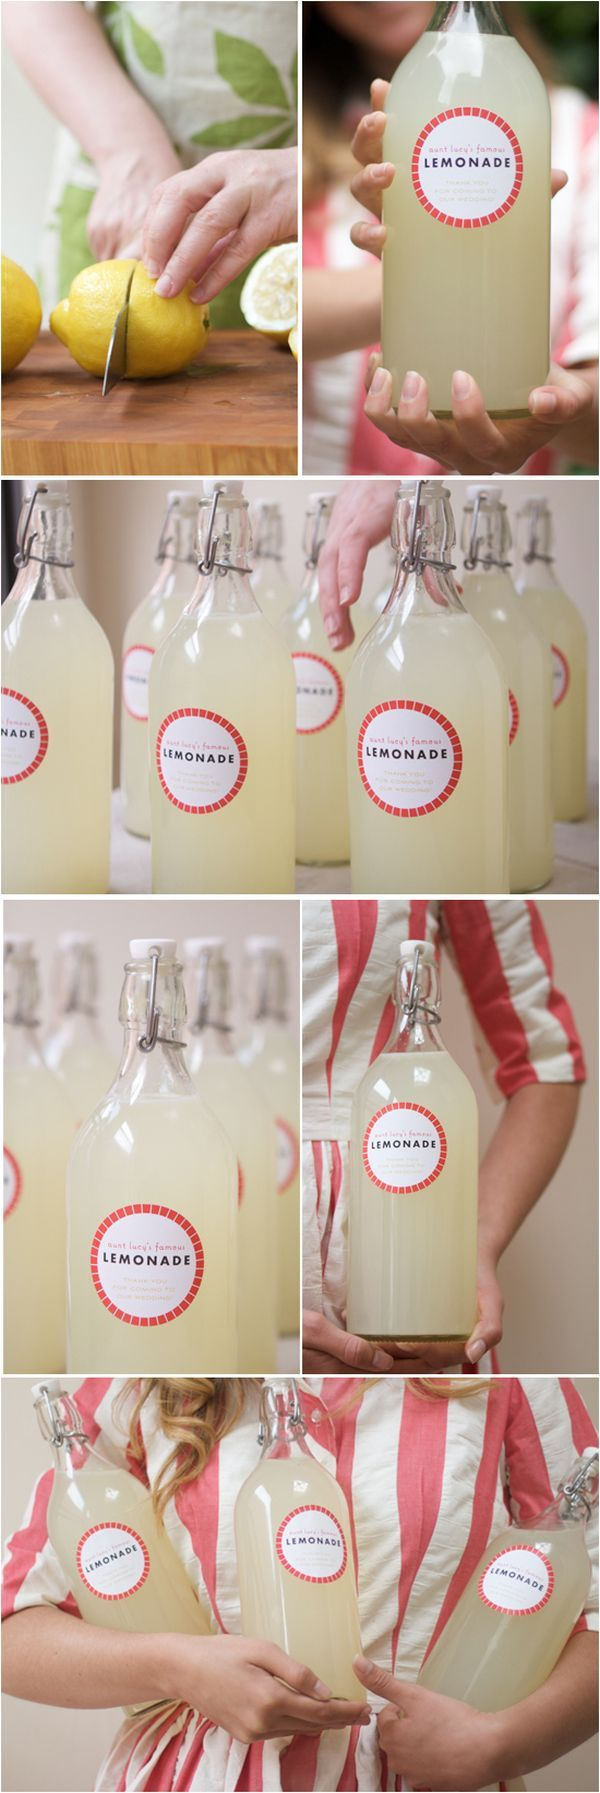 DIY Lemonade Wedding Favors